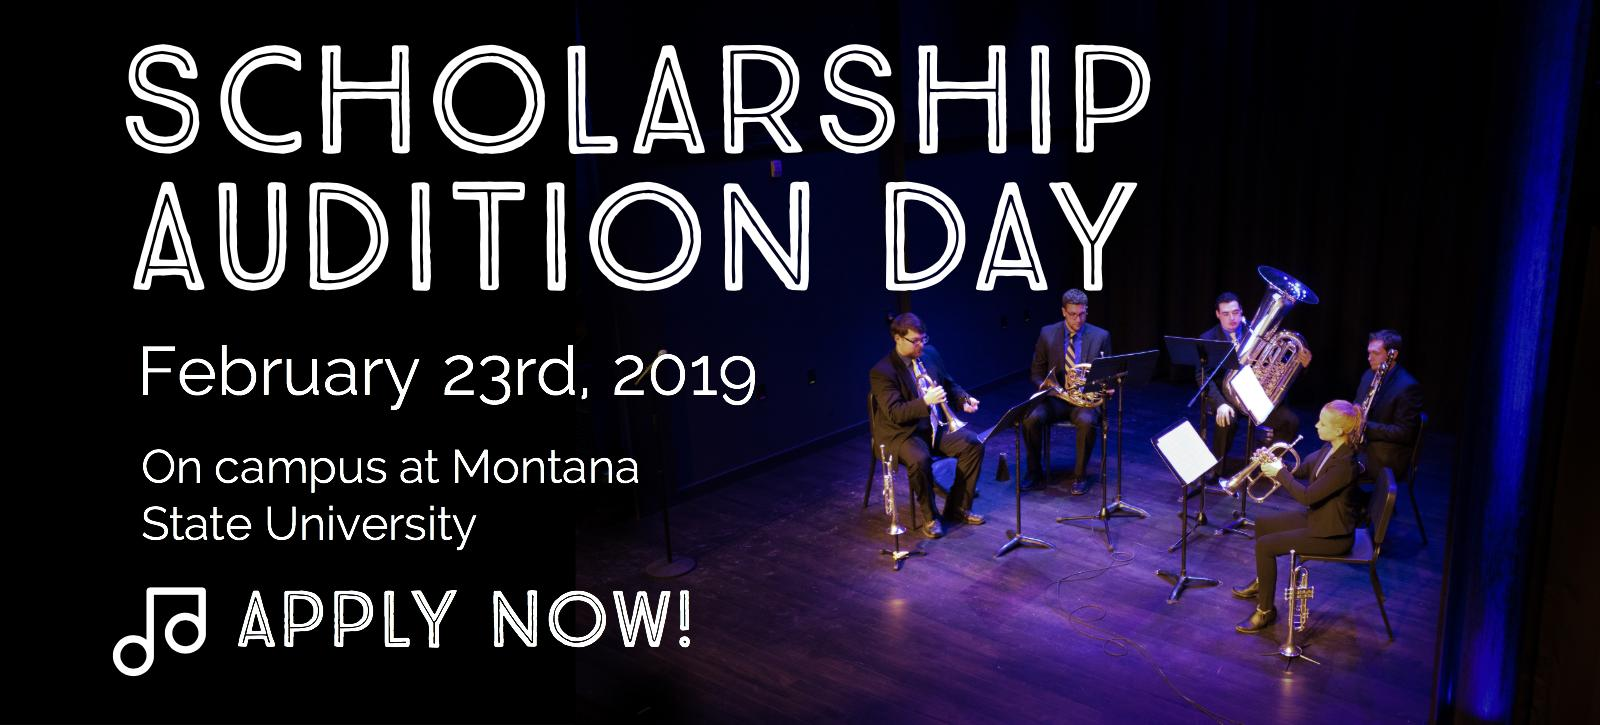 Scholarship Audition Day, Apply Now!